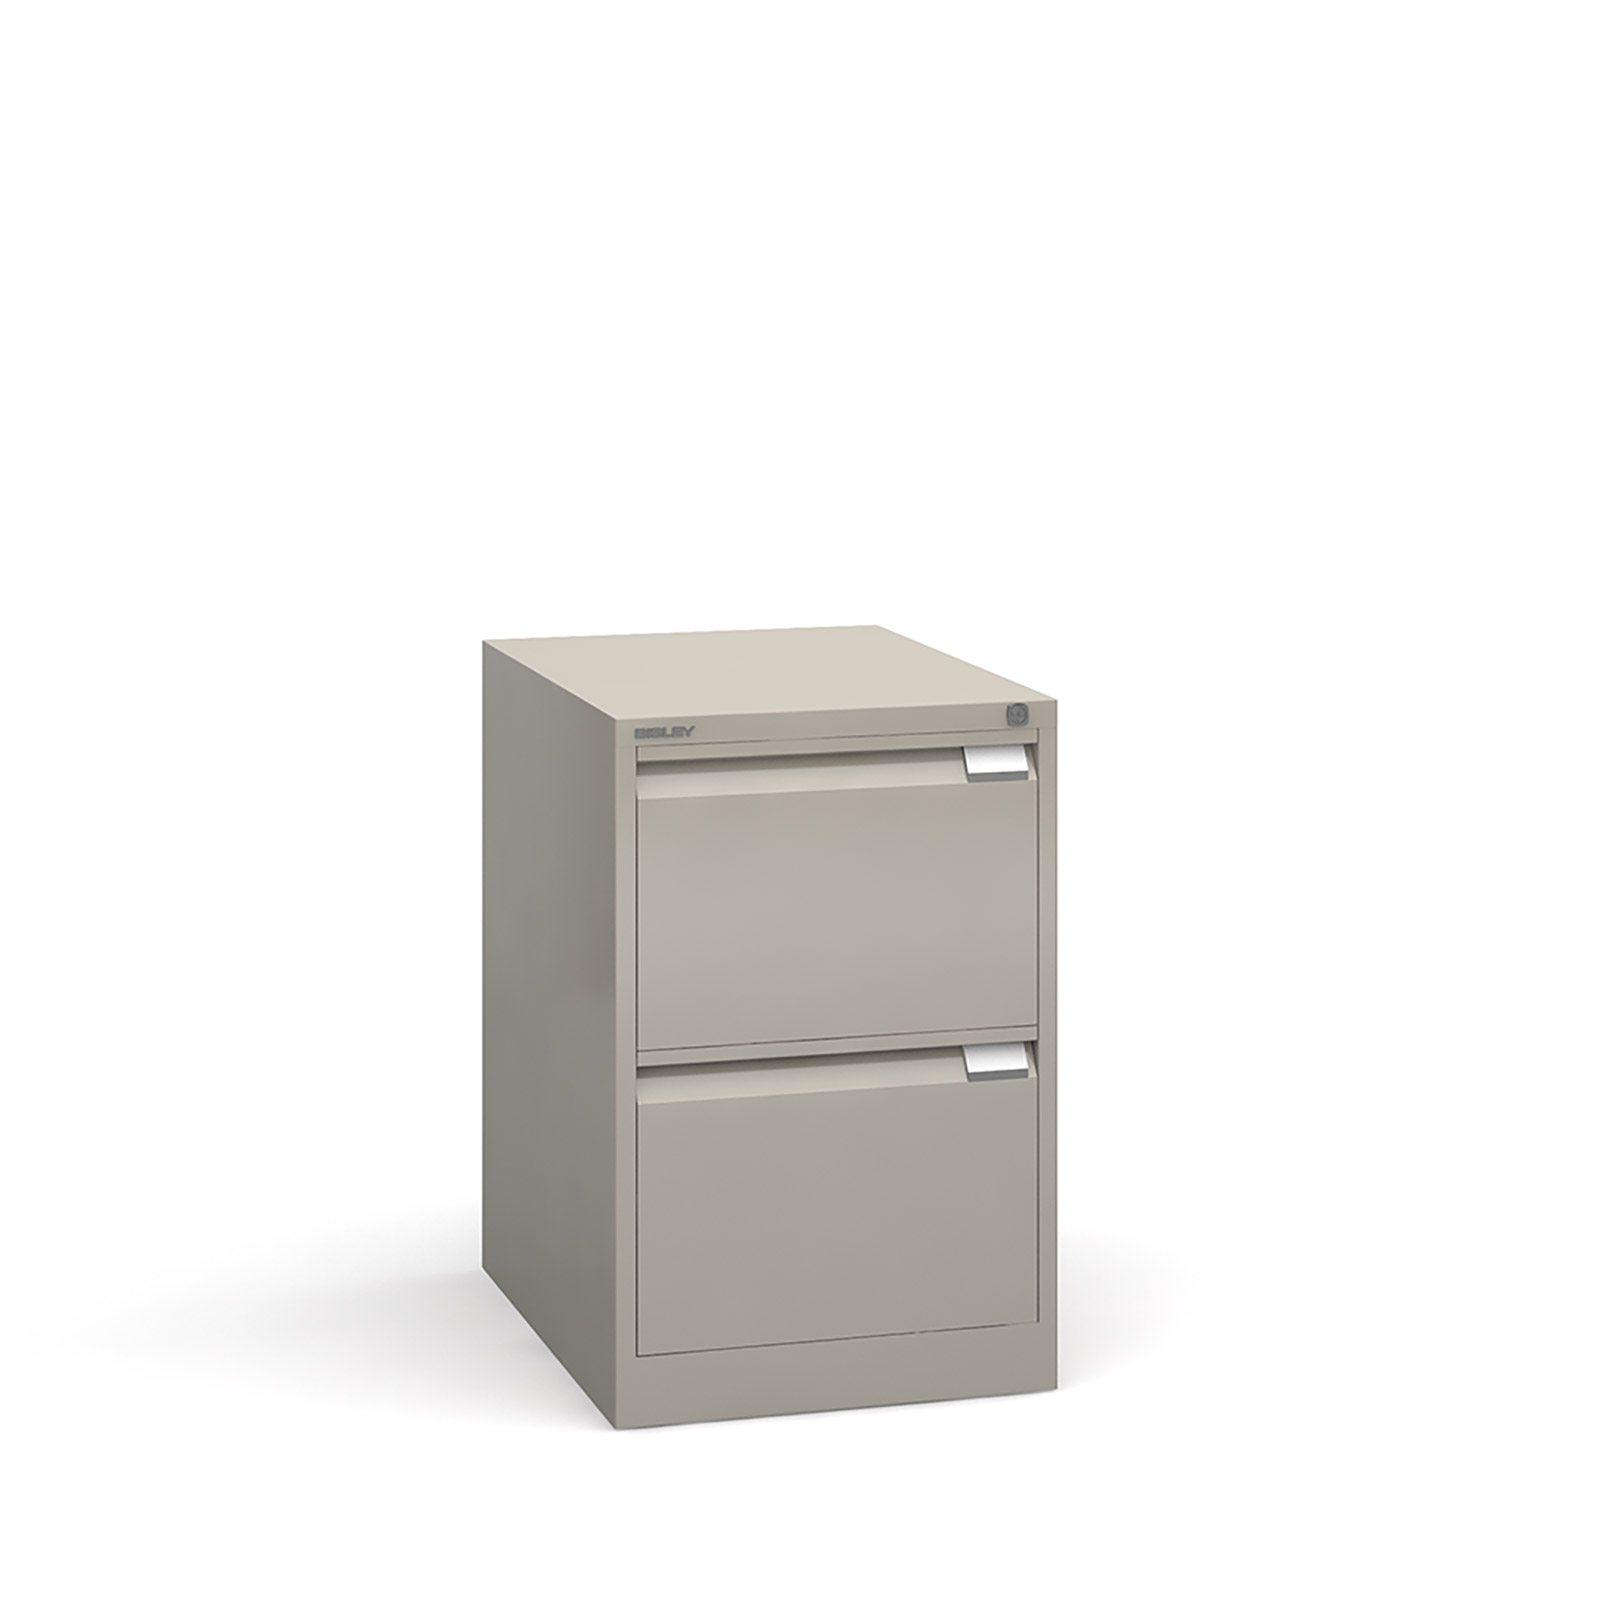 Bisley 2 drawer BS filing cabinet 711mm - goose grey